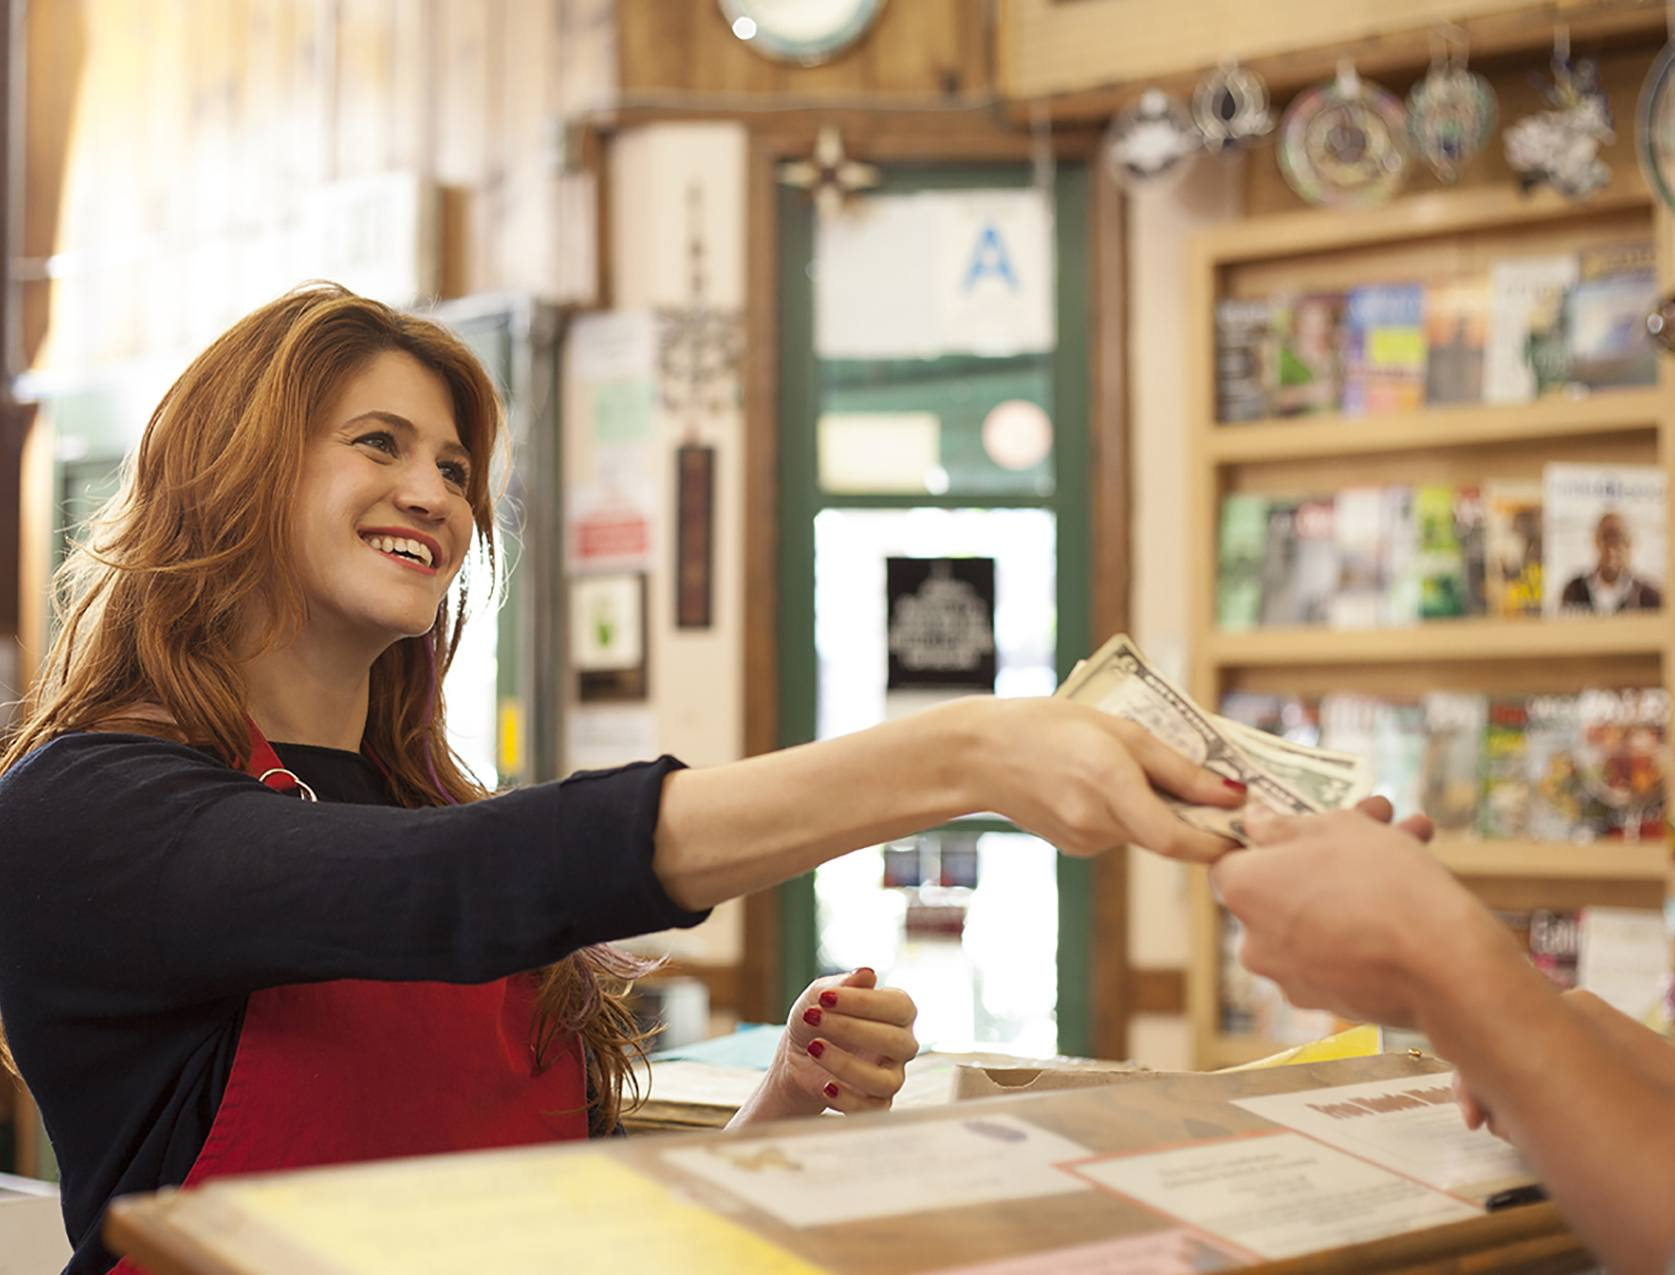 Collaborate with other small firms and make the most of Small Business Saturday